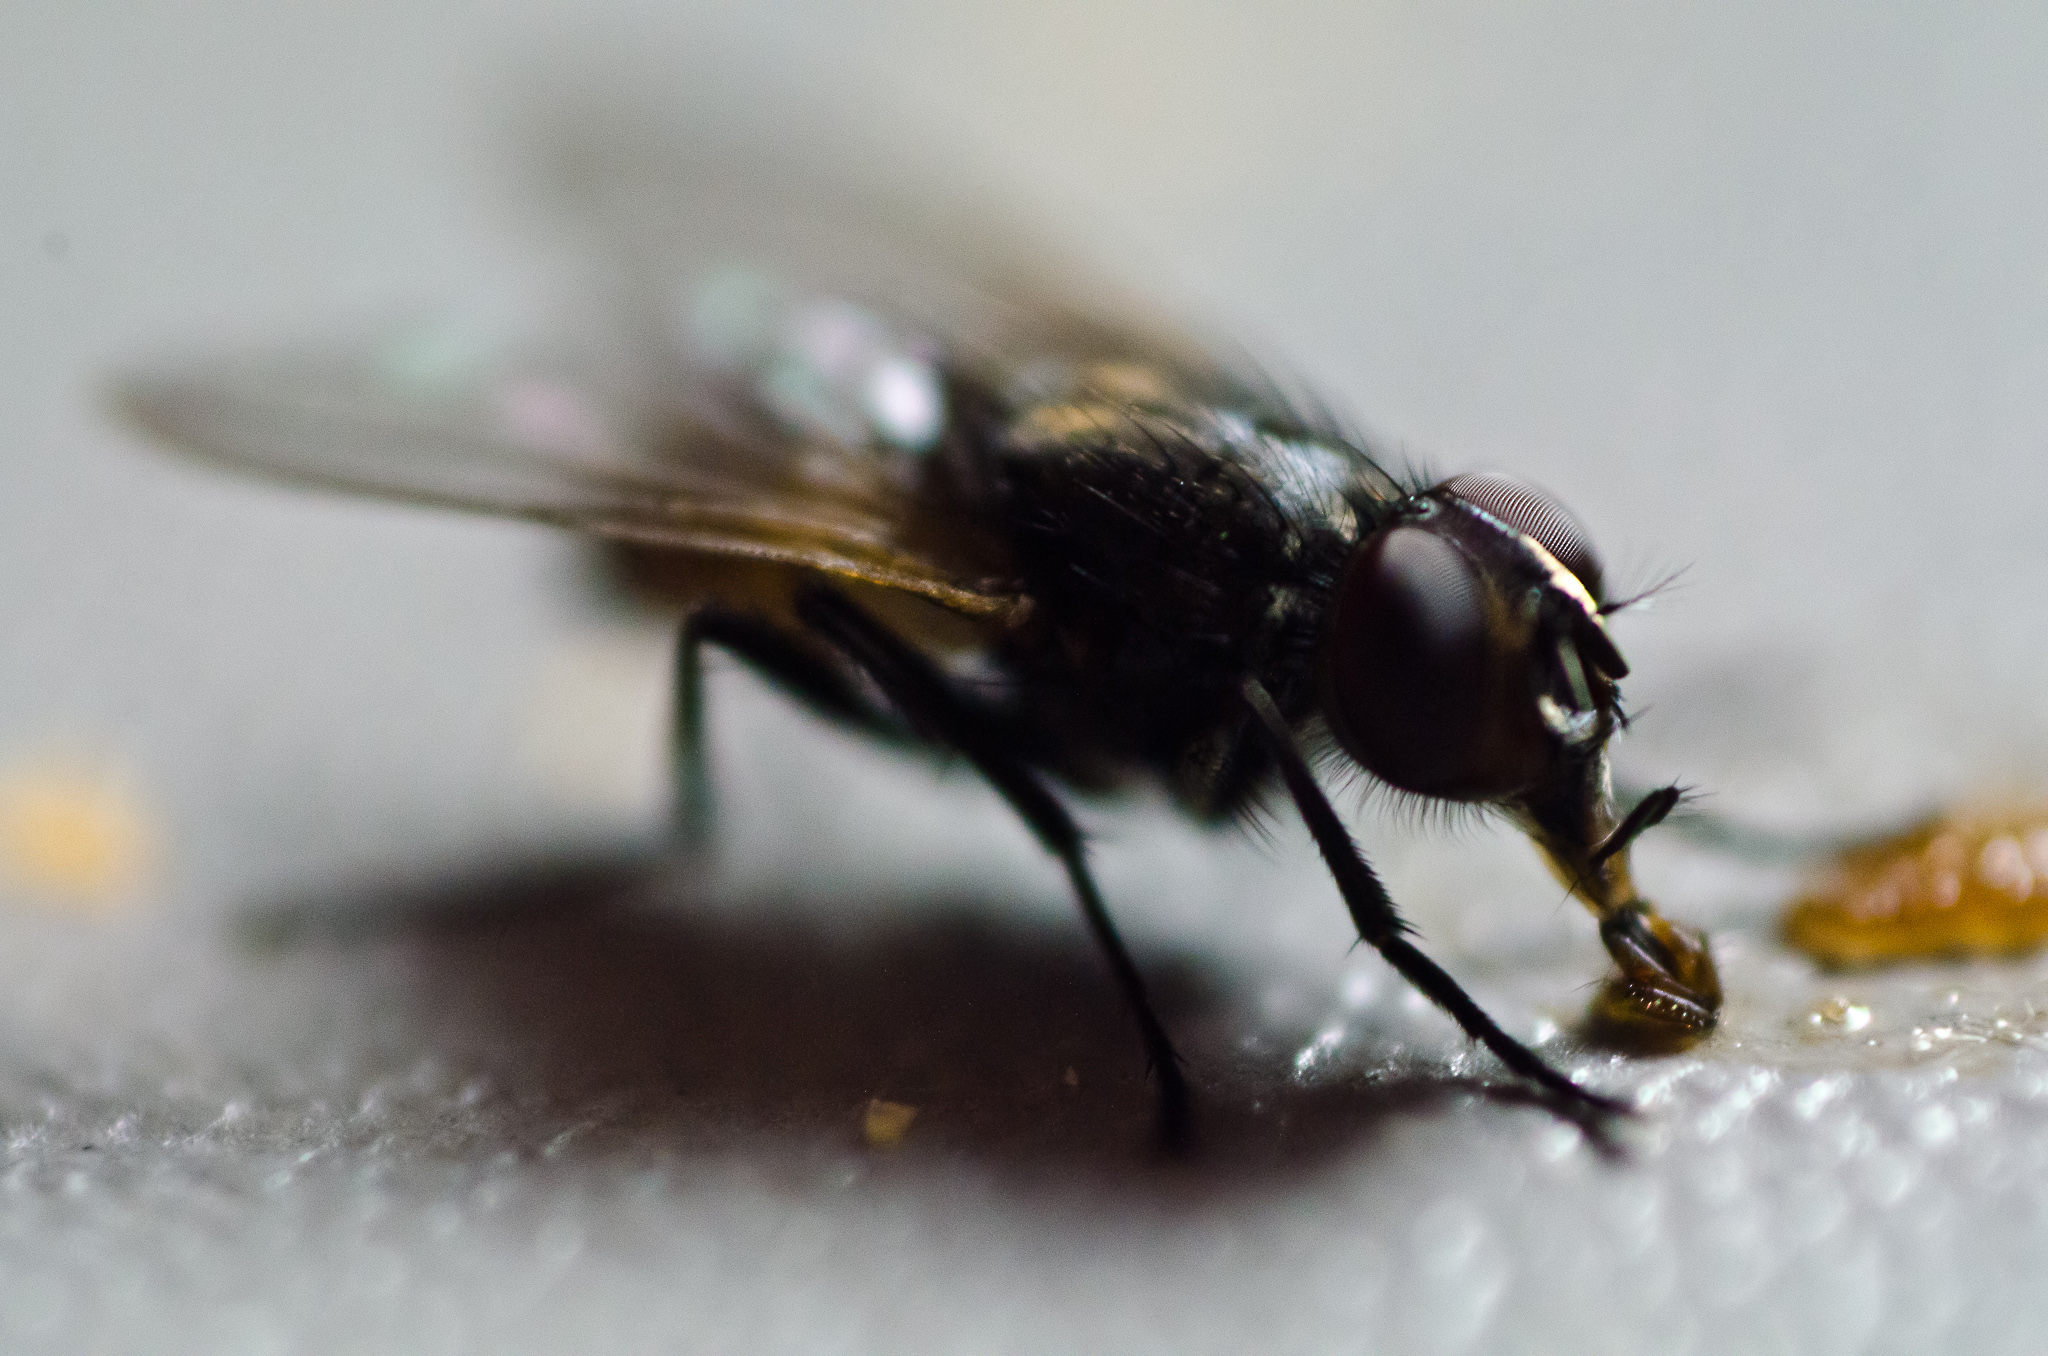 File:Housefly on Table.jpg - Wikimedia Commons